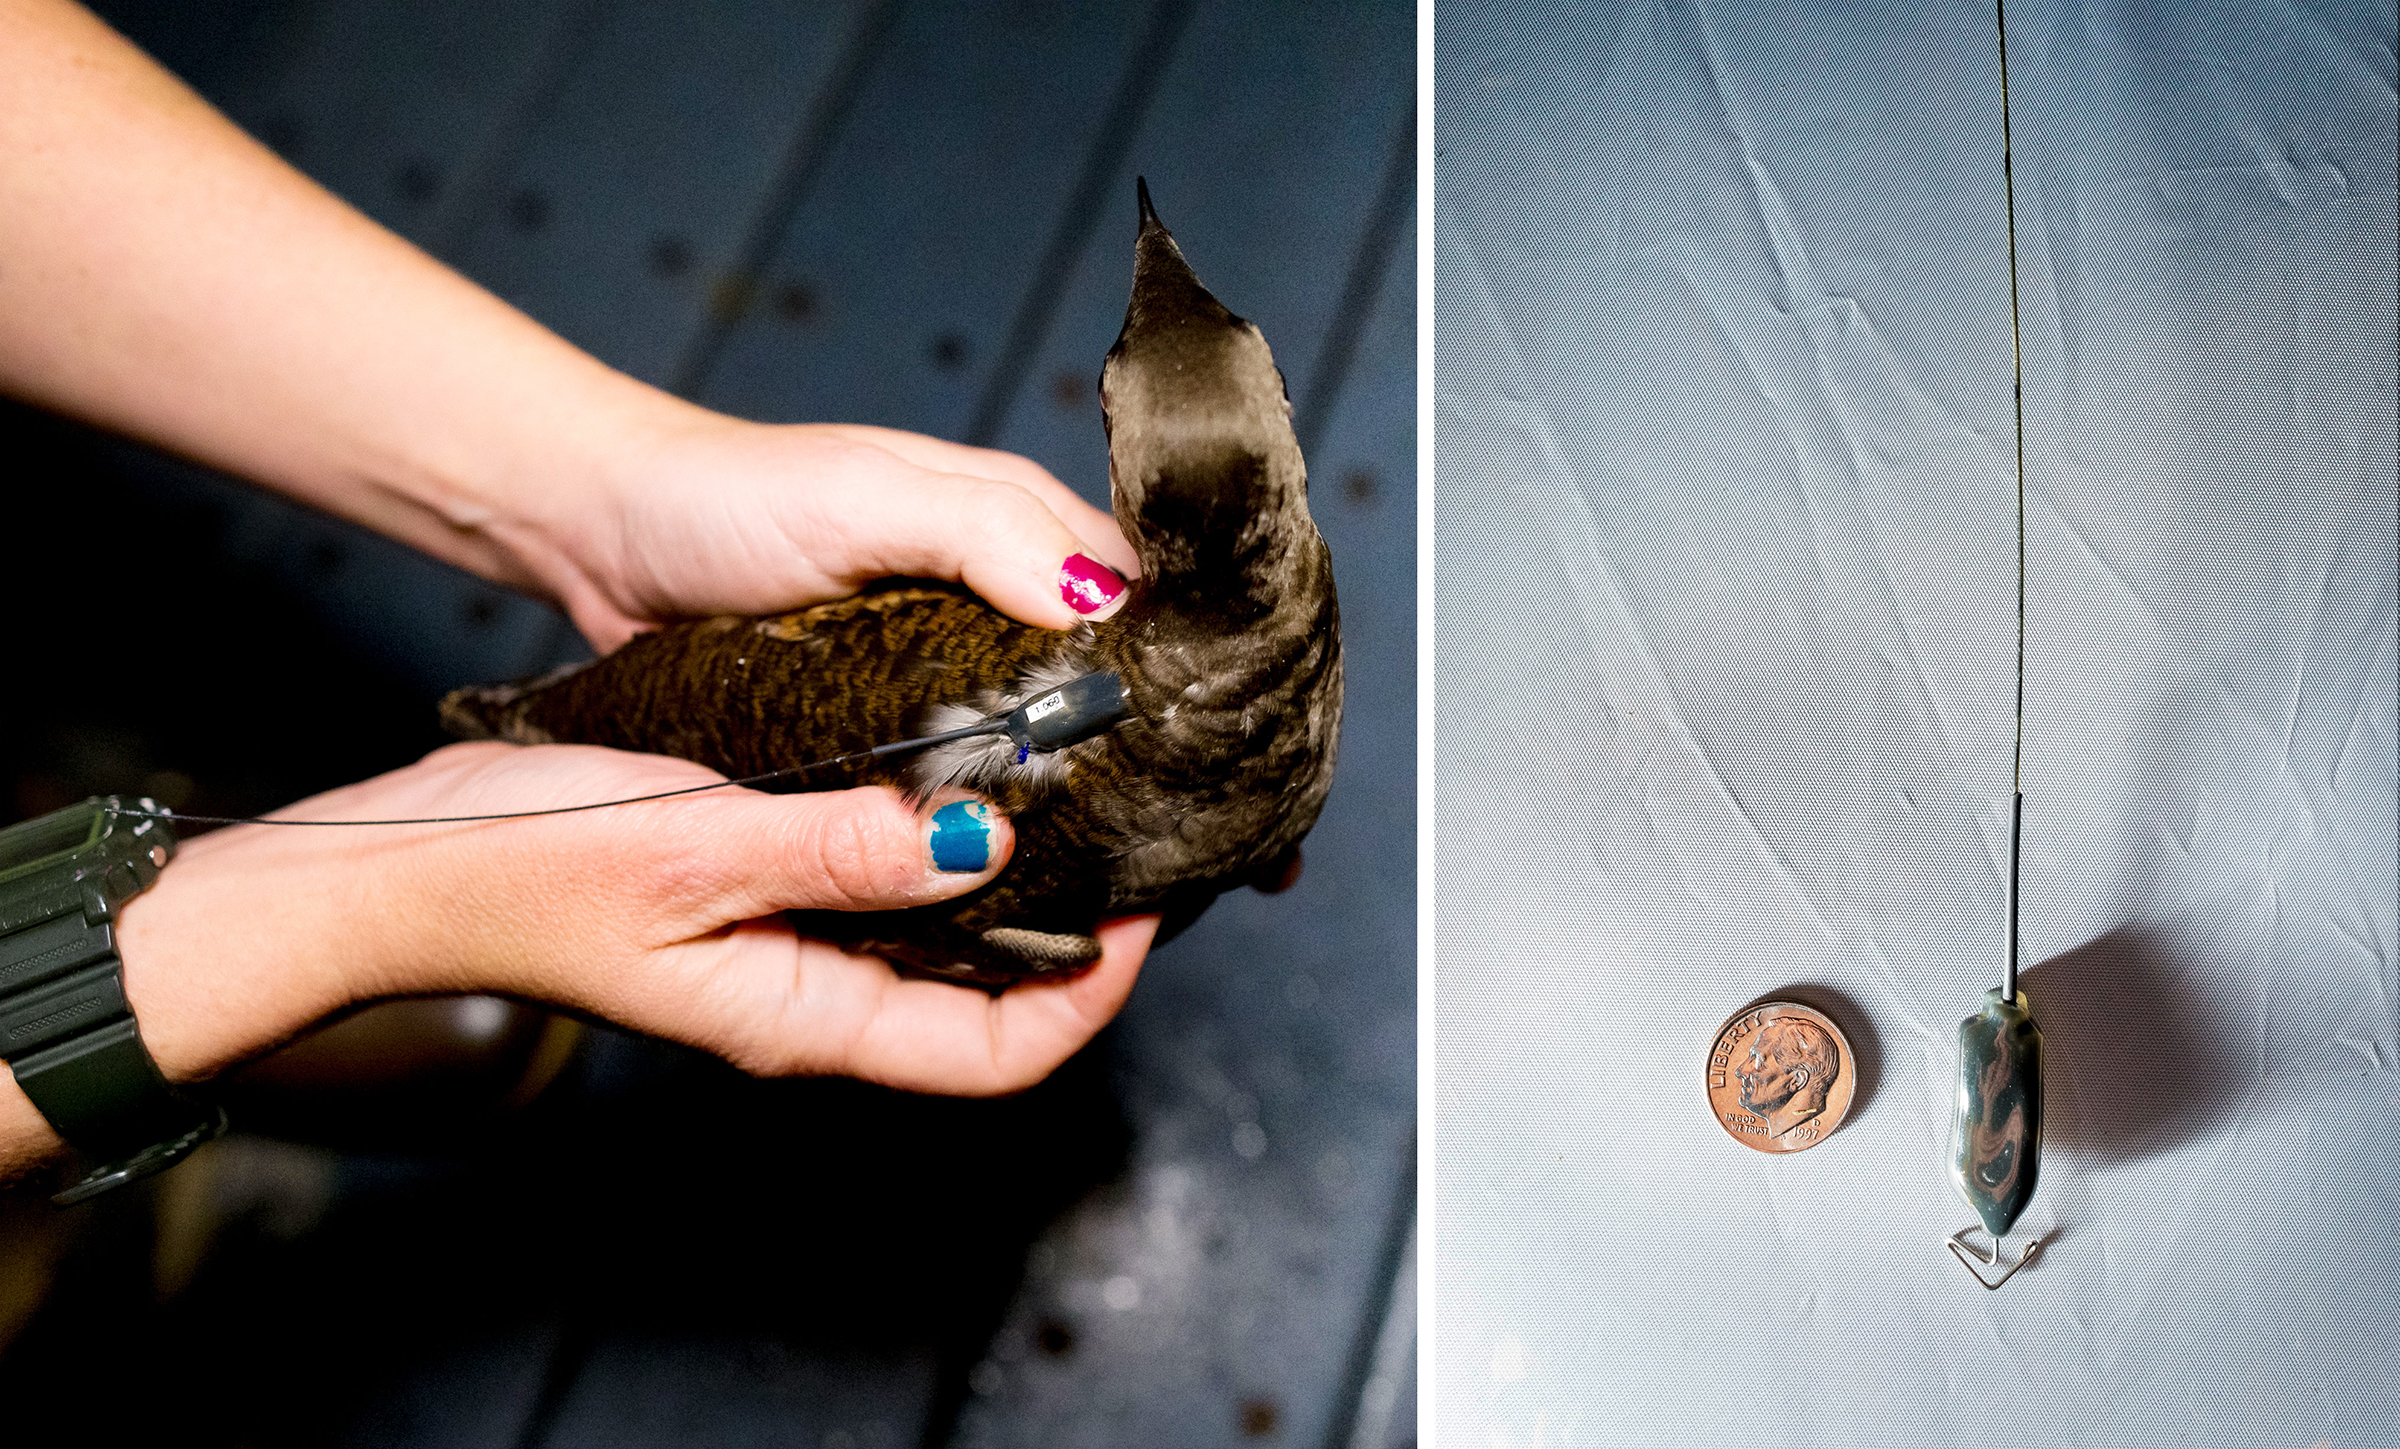 From left: A researcher holds a tagged Marbled Murrelet. The entire process of working with the bird, capture to release, takes under an hour; a closer look at the transmitter tag, compared to a U.S. dime. Photos: Jaymi Heimbuch